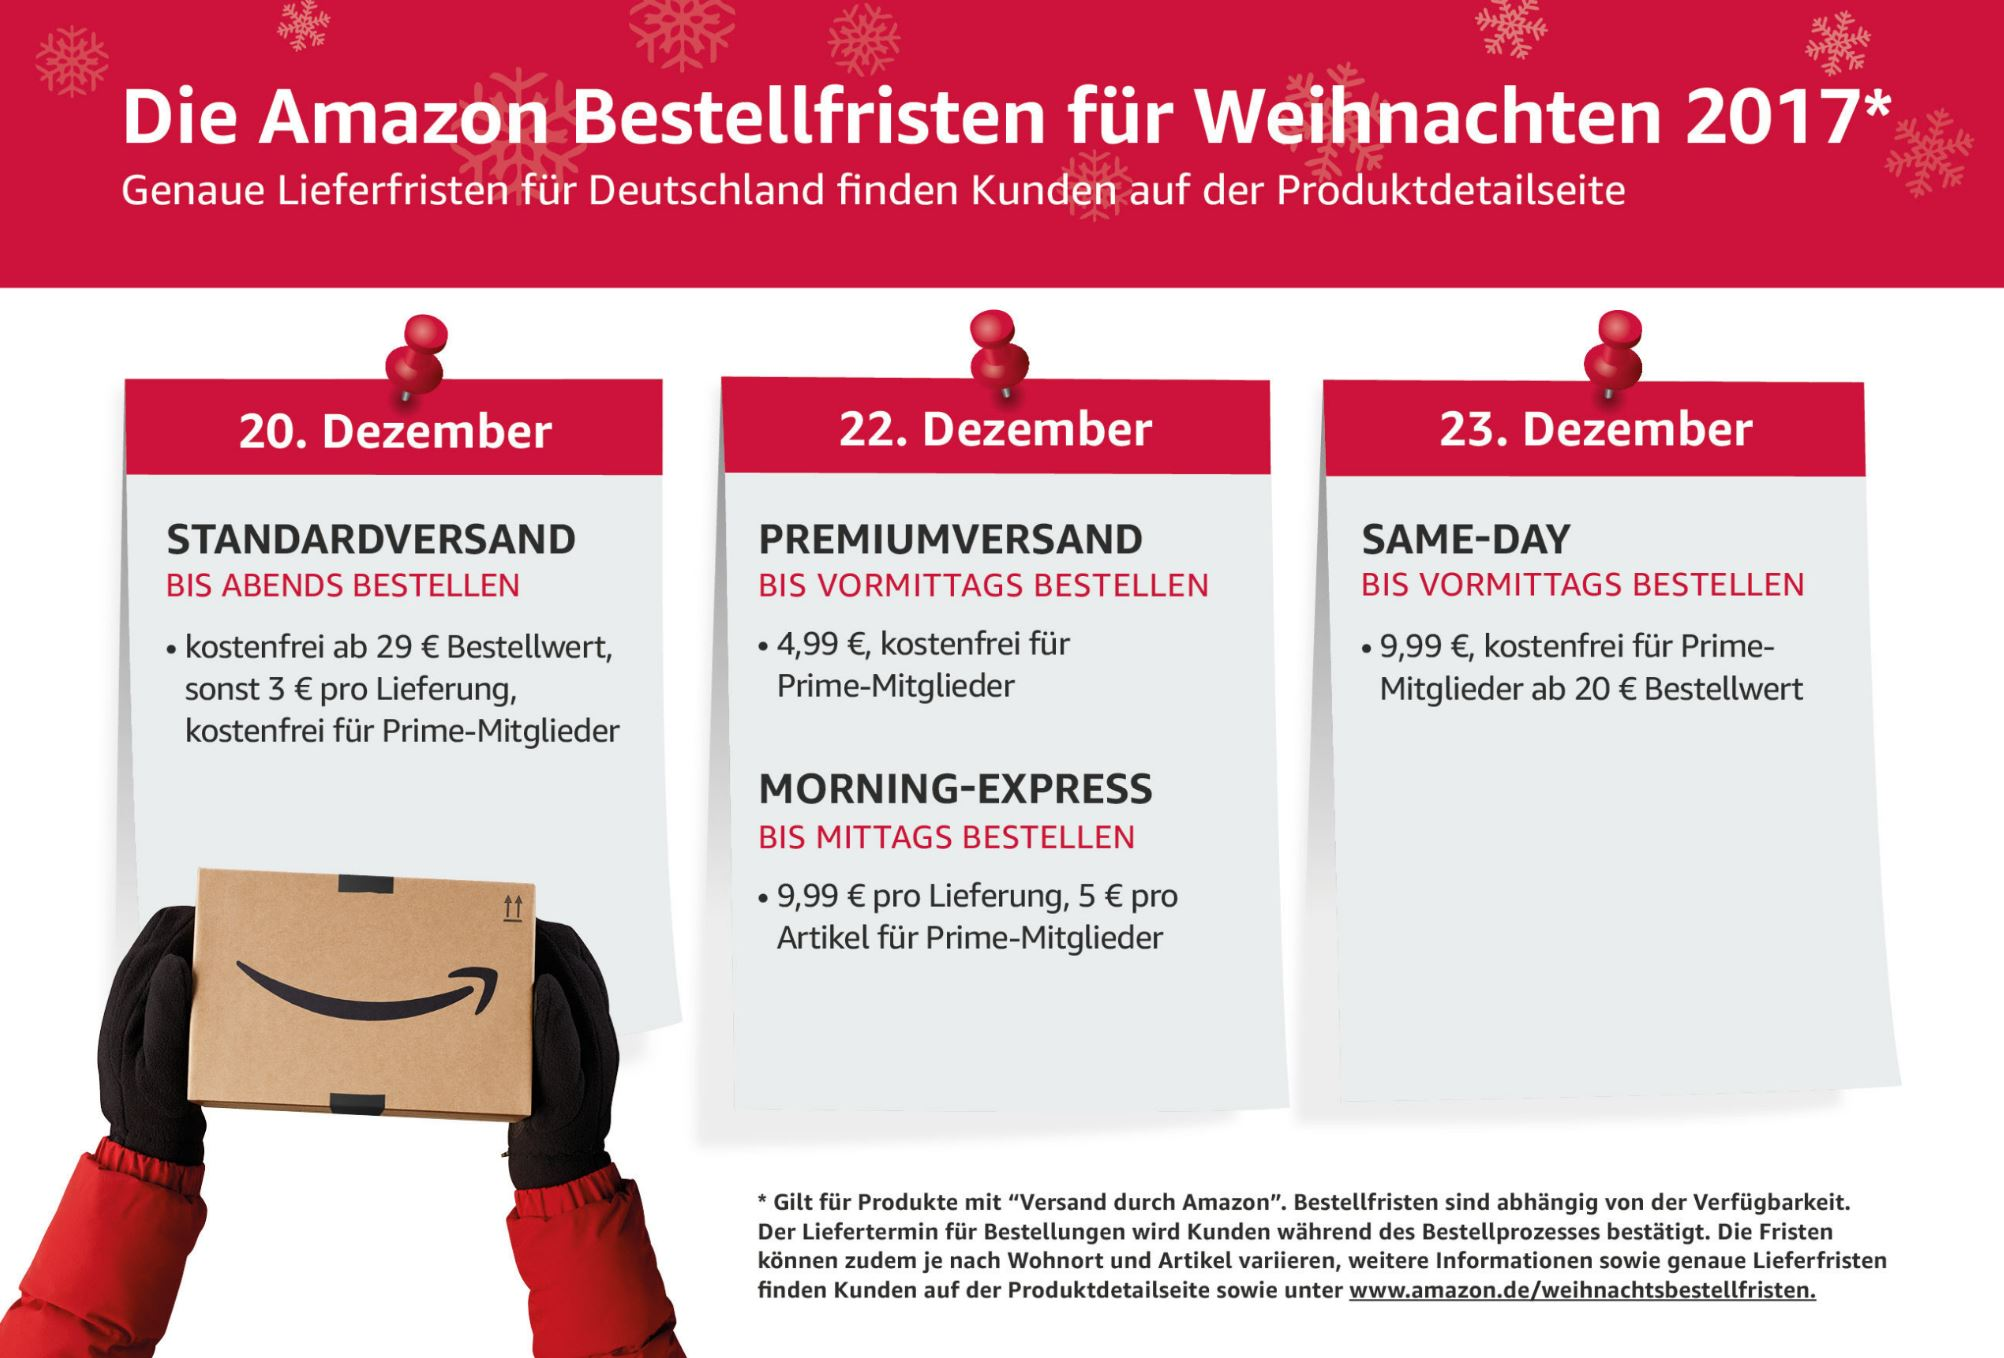 die amazon bestellfristen f r weihnachten 2017. Black Bedroom Furniture Sets. Home Design Ideas